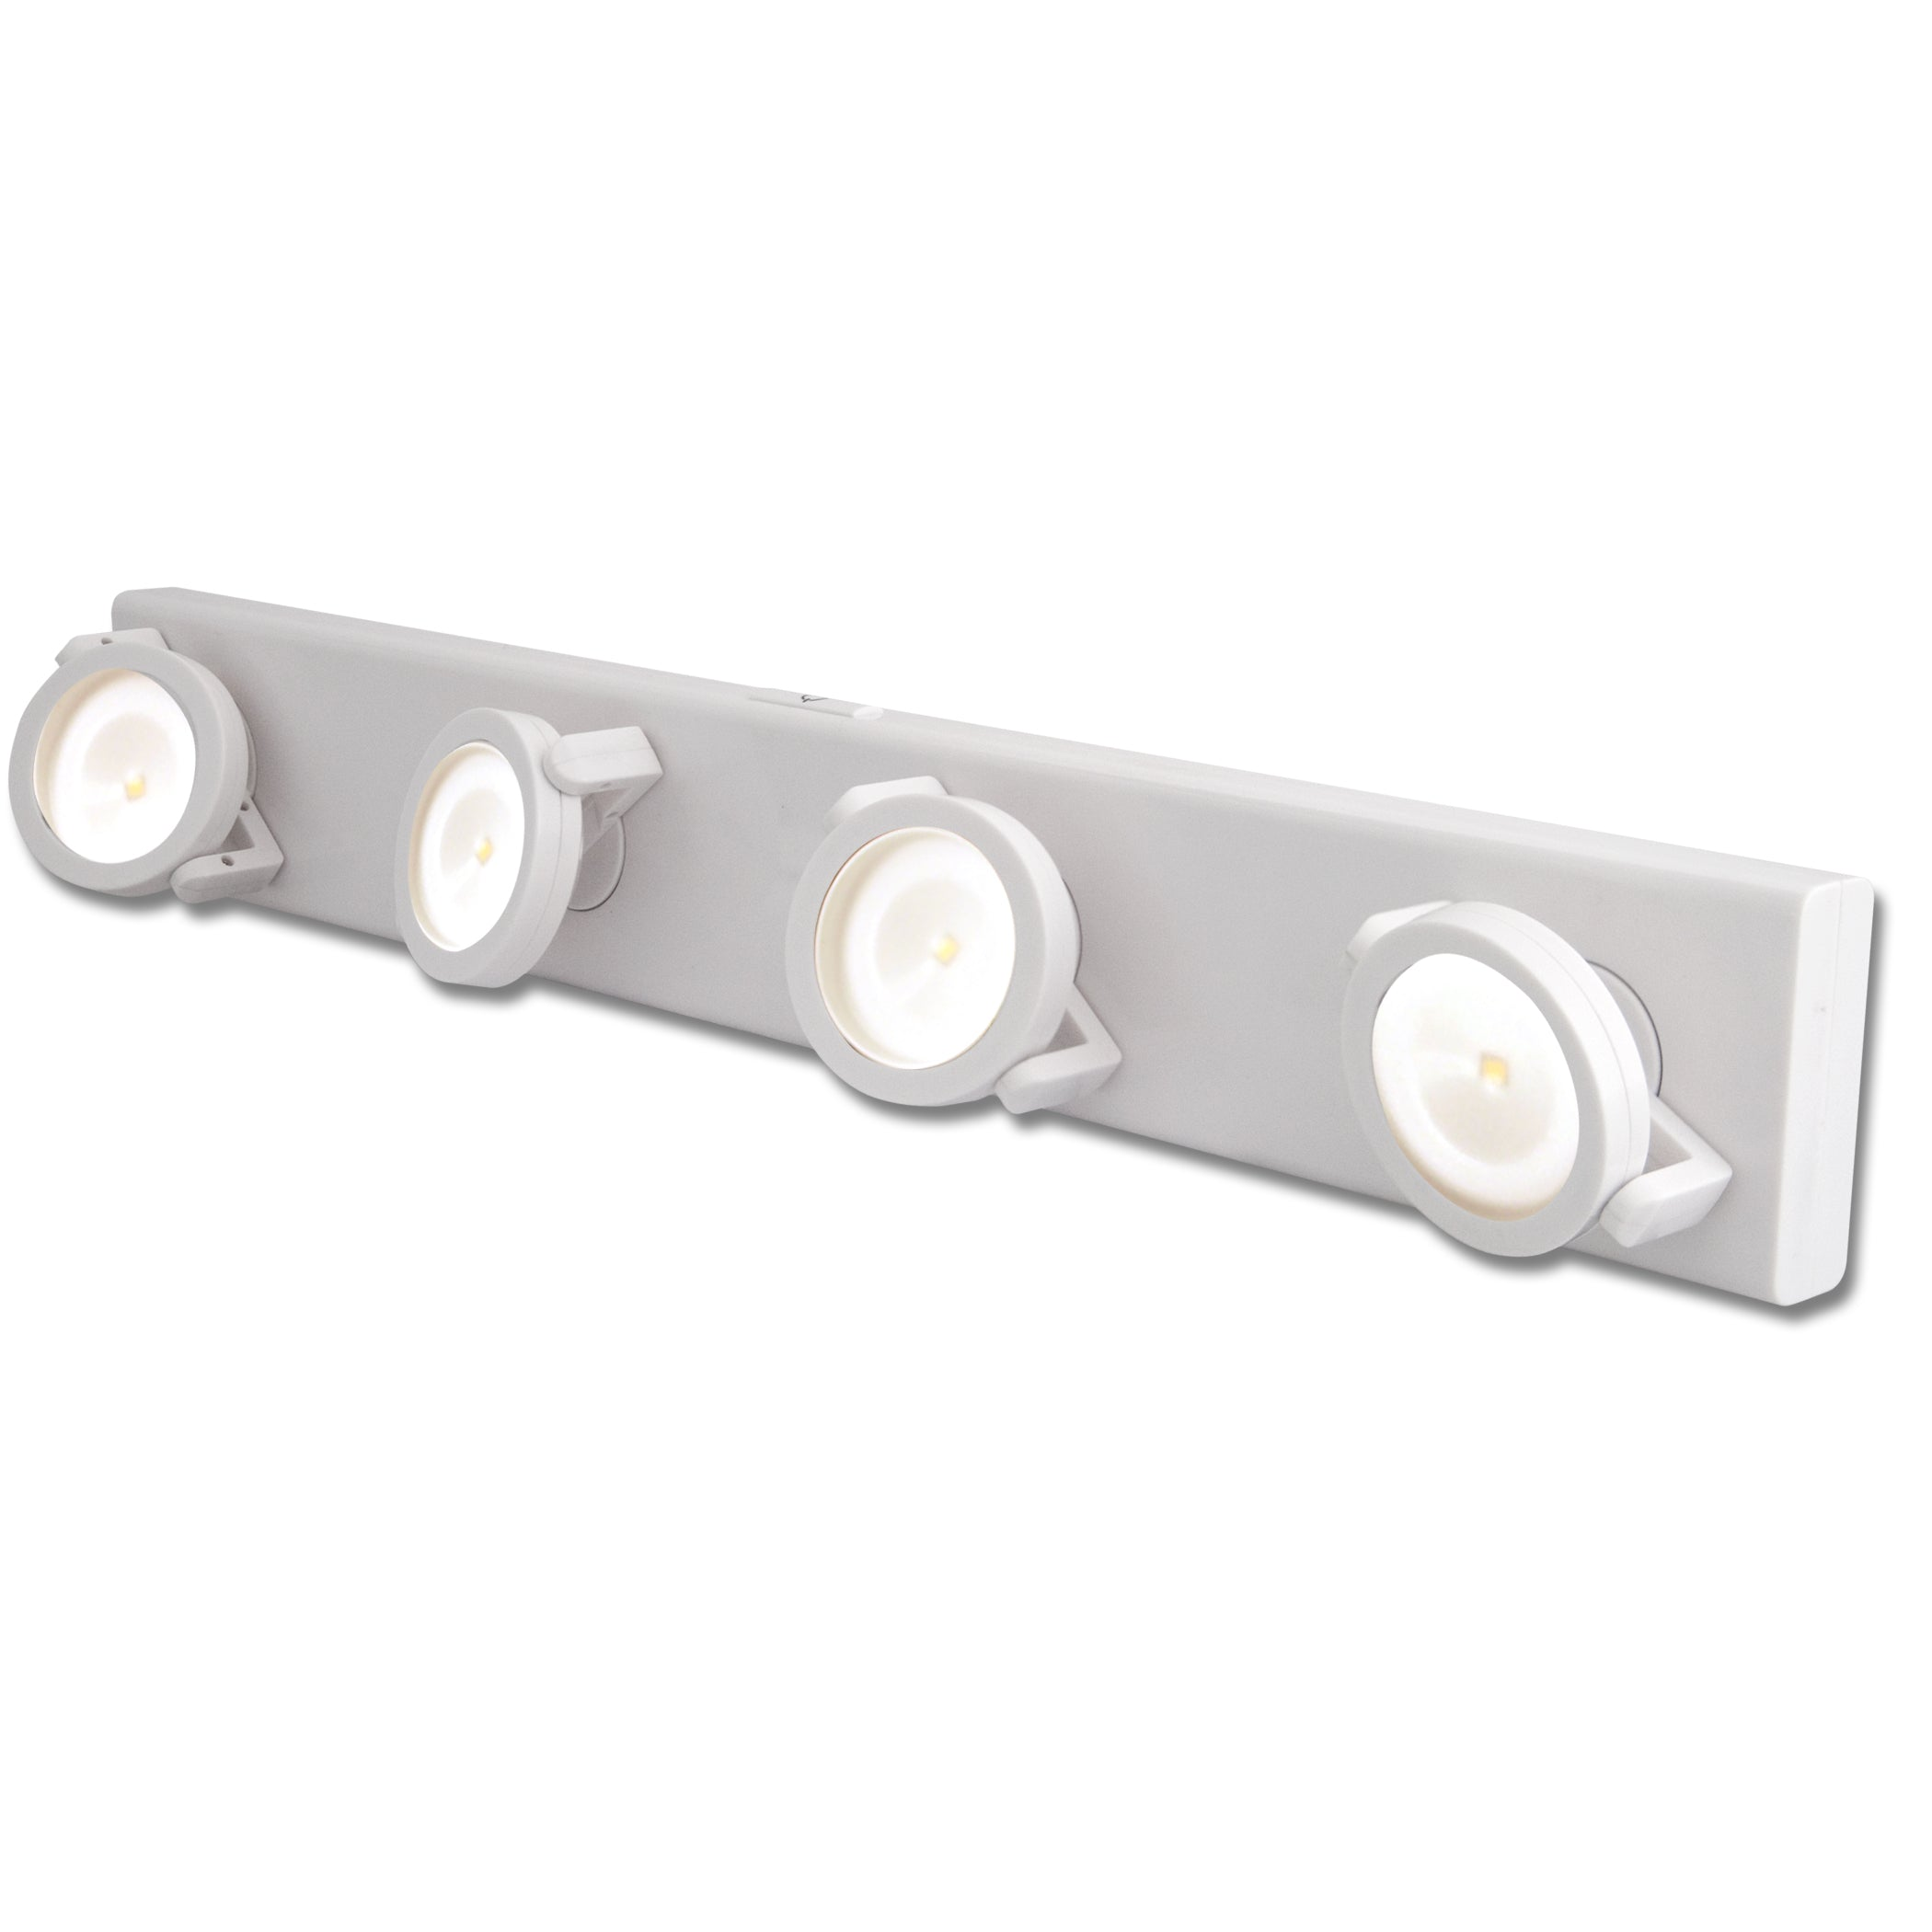 Led under cabinet track light amertac led under cabinet track light mozeypictures Image collections